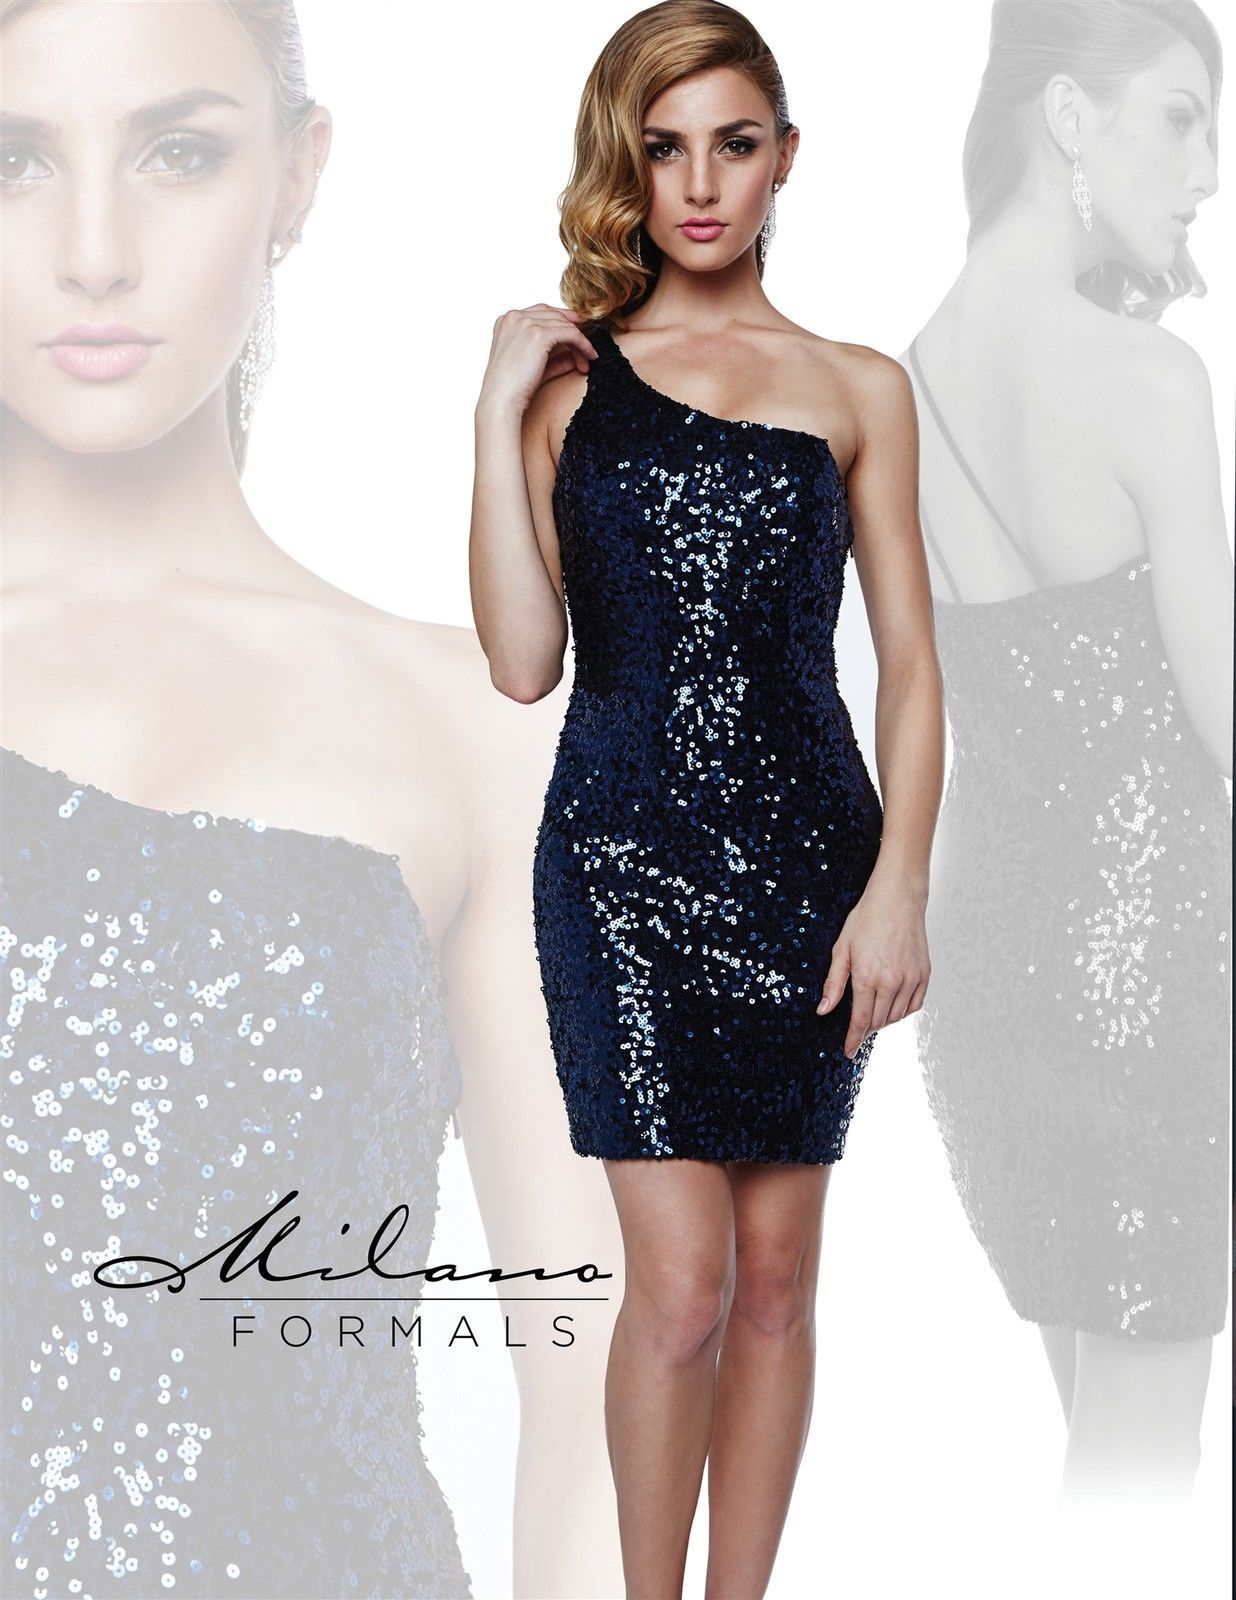 Image 2 of Milano Formals E1606 Sequin Navy Mini One Shoulder Fitted Party Dress 14